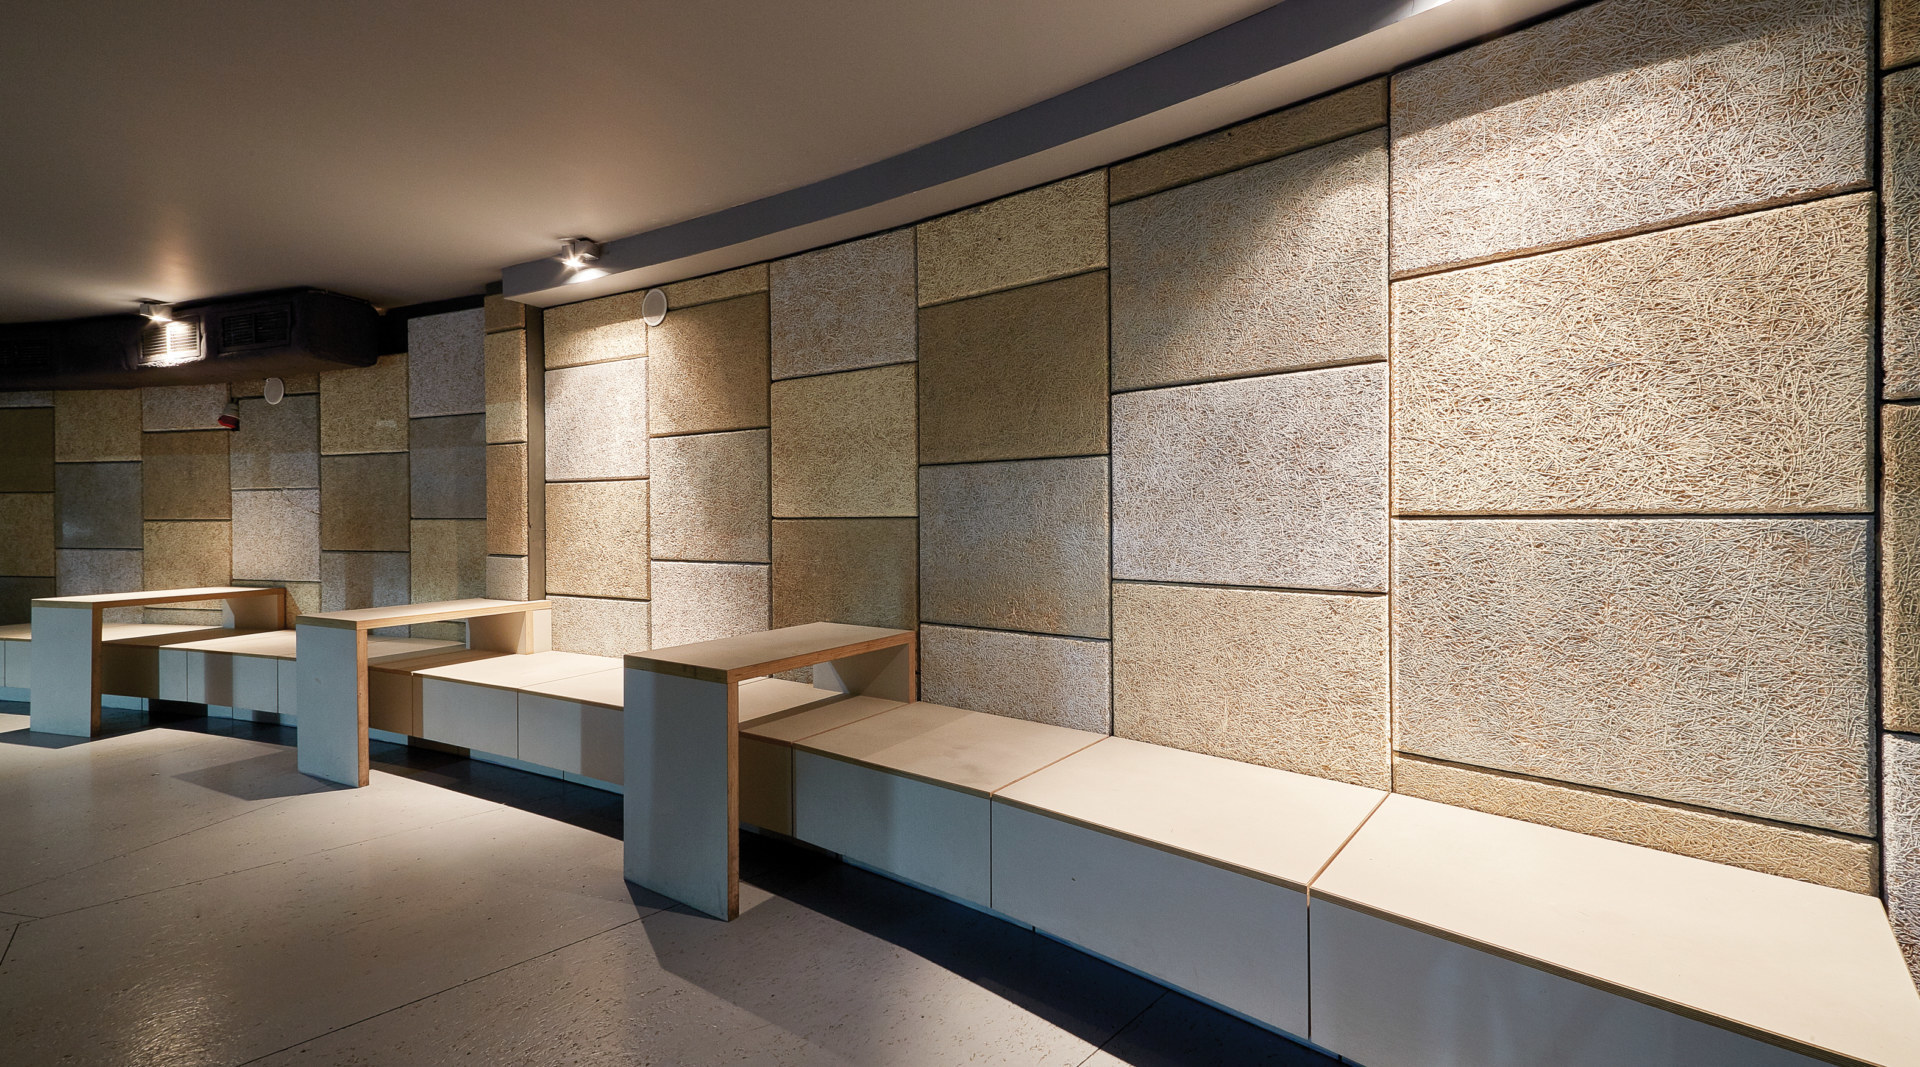 Ecologically, it is simple to produce and panels are available in size and color variations that can be designed to fit nearly any décor.